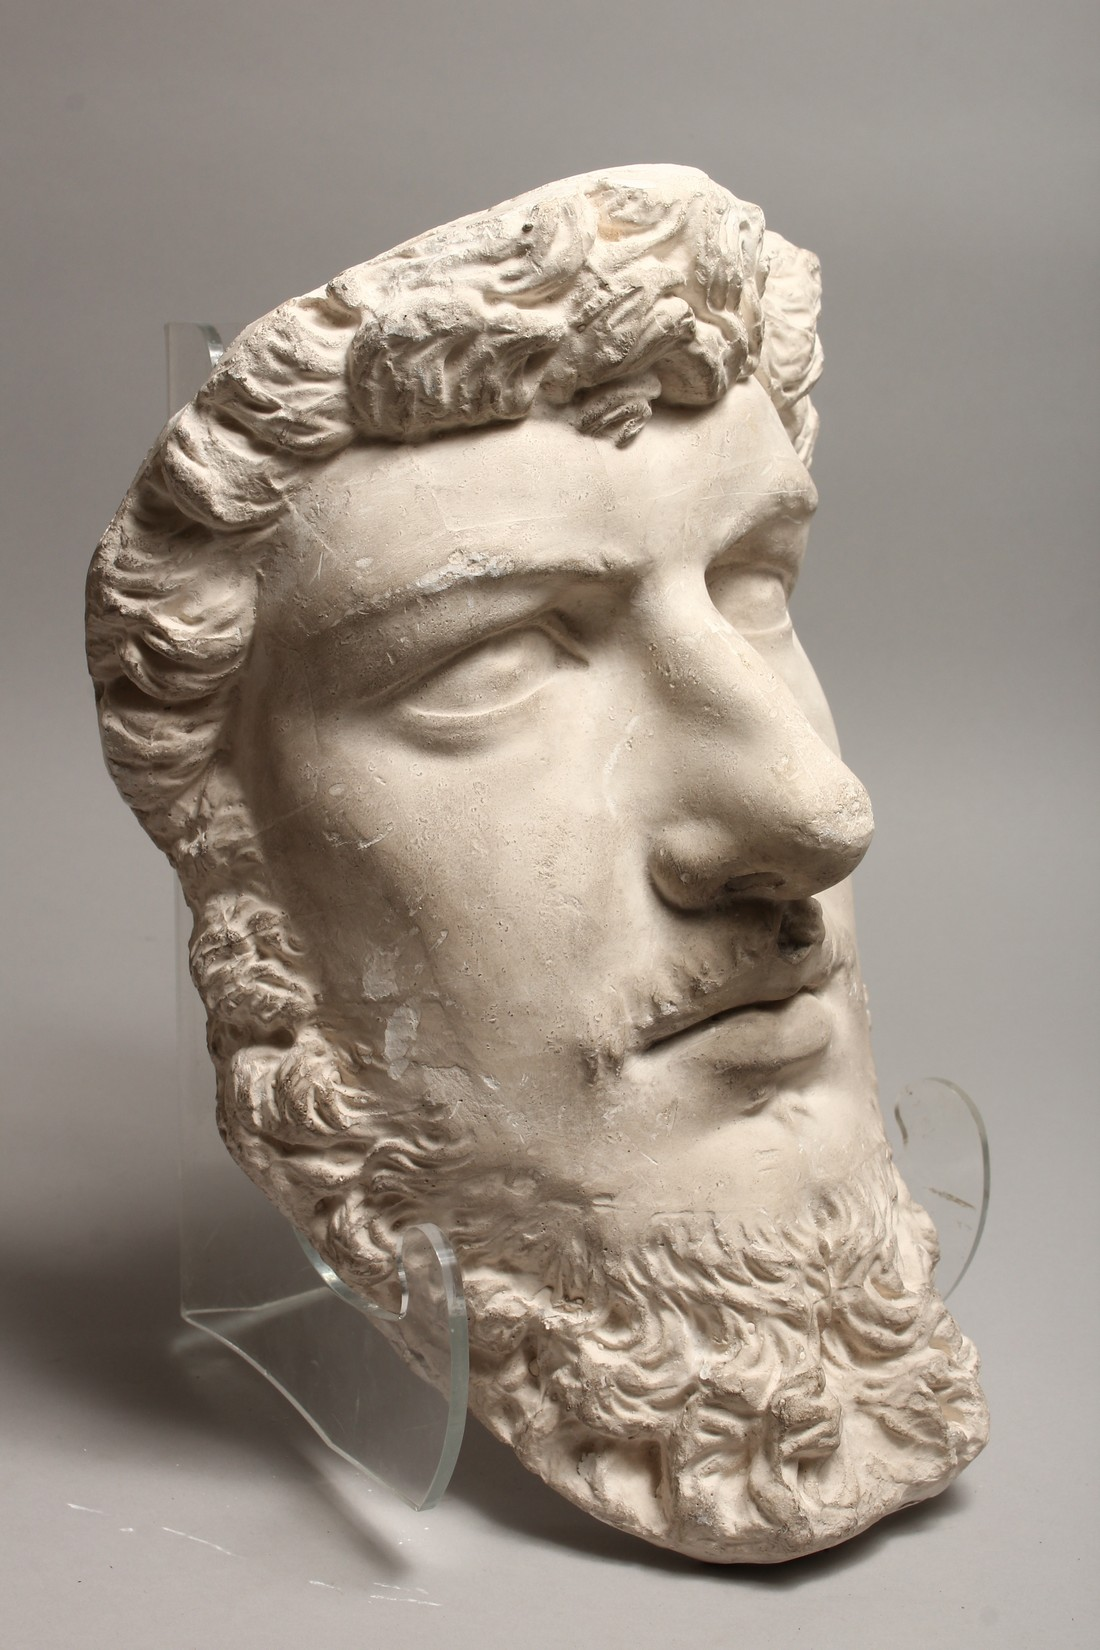 A RUSSIAN LARGE PLASTER HEAD OF A MAN 14ins long - Image 2 of 4